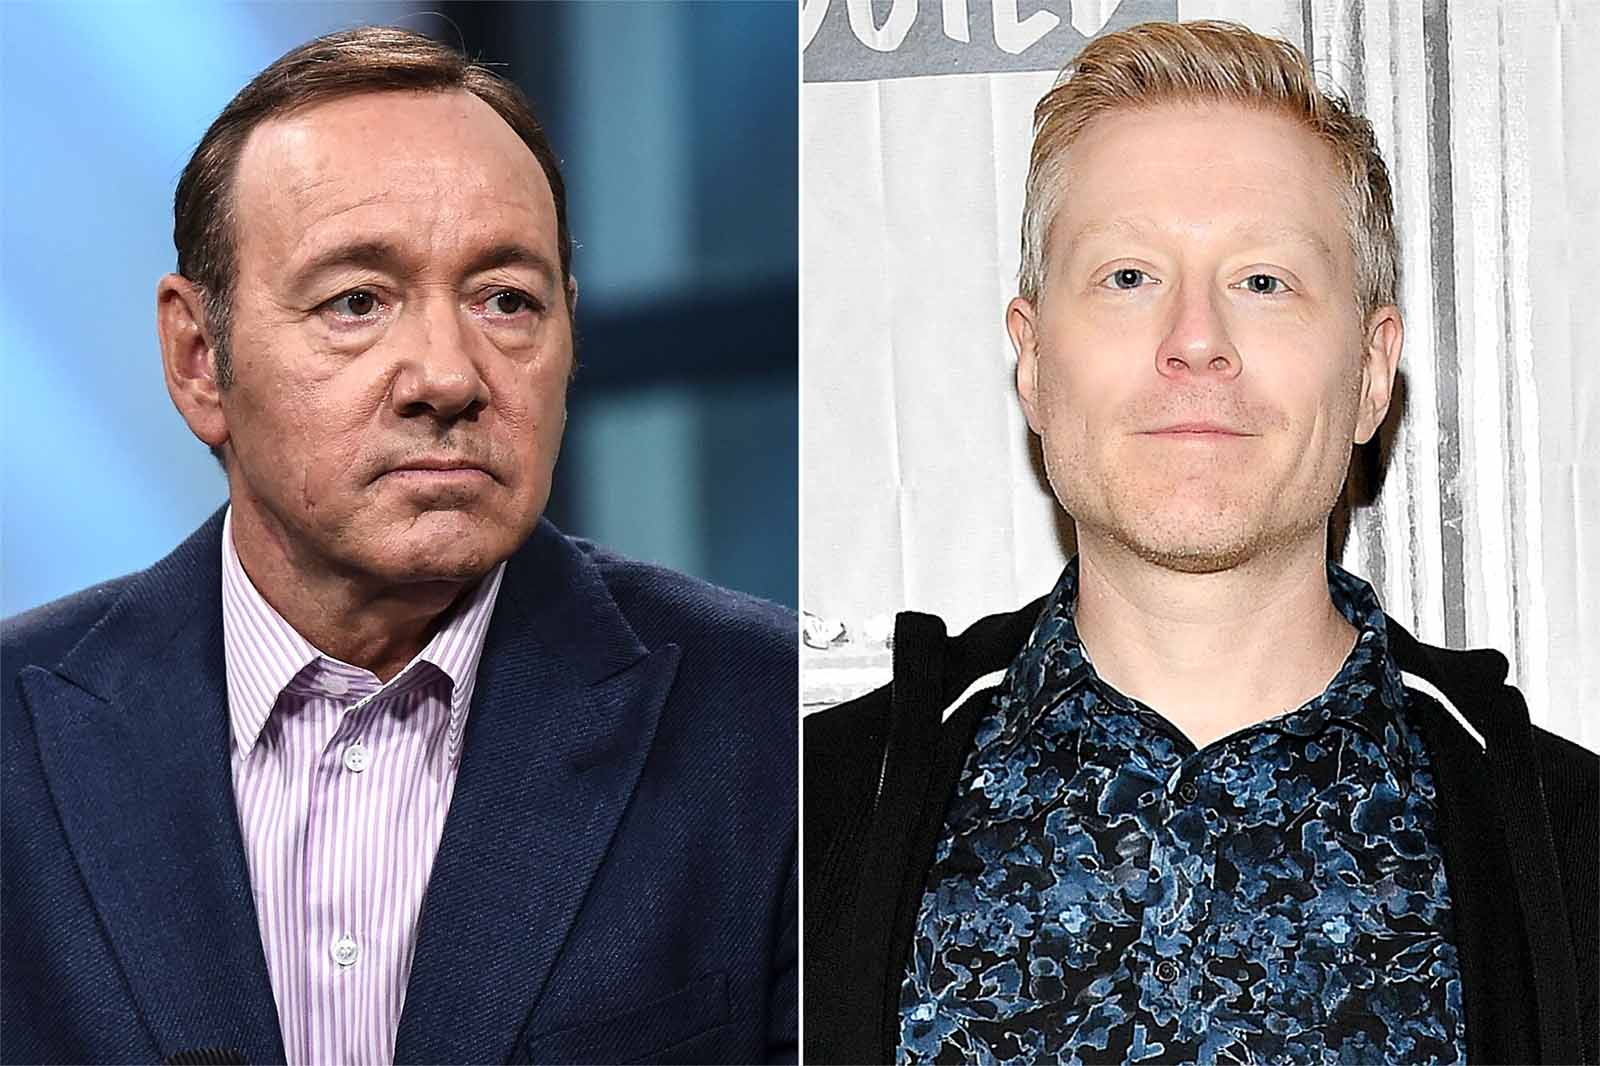 After accusing him of attempted sexual assault three years ago, Anthony Rapp is finally suing Kevin Spacey over the incident. Read about the new lawsuit.